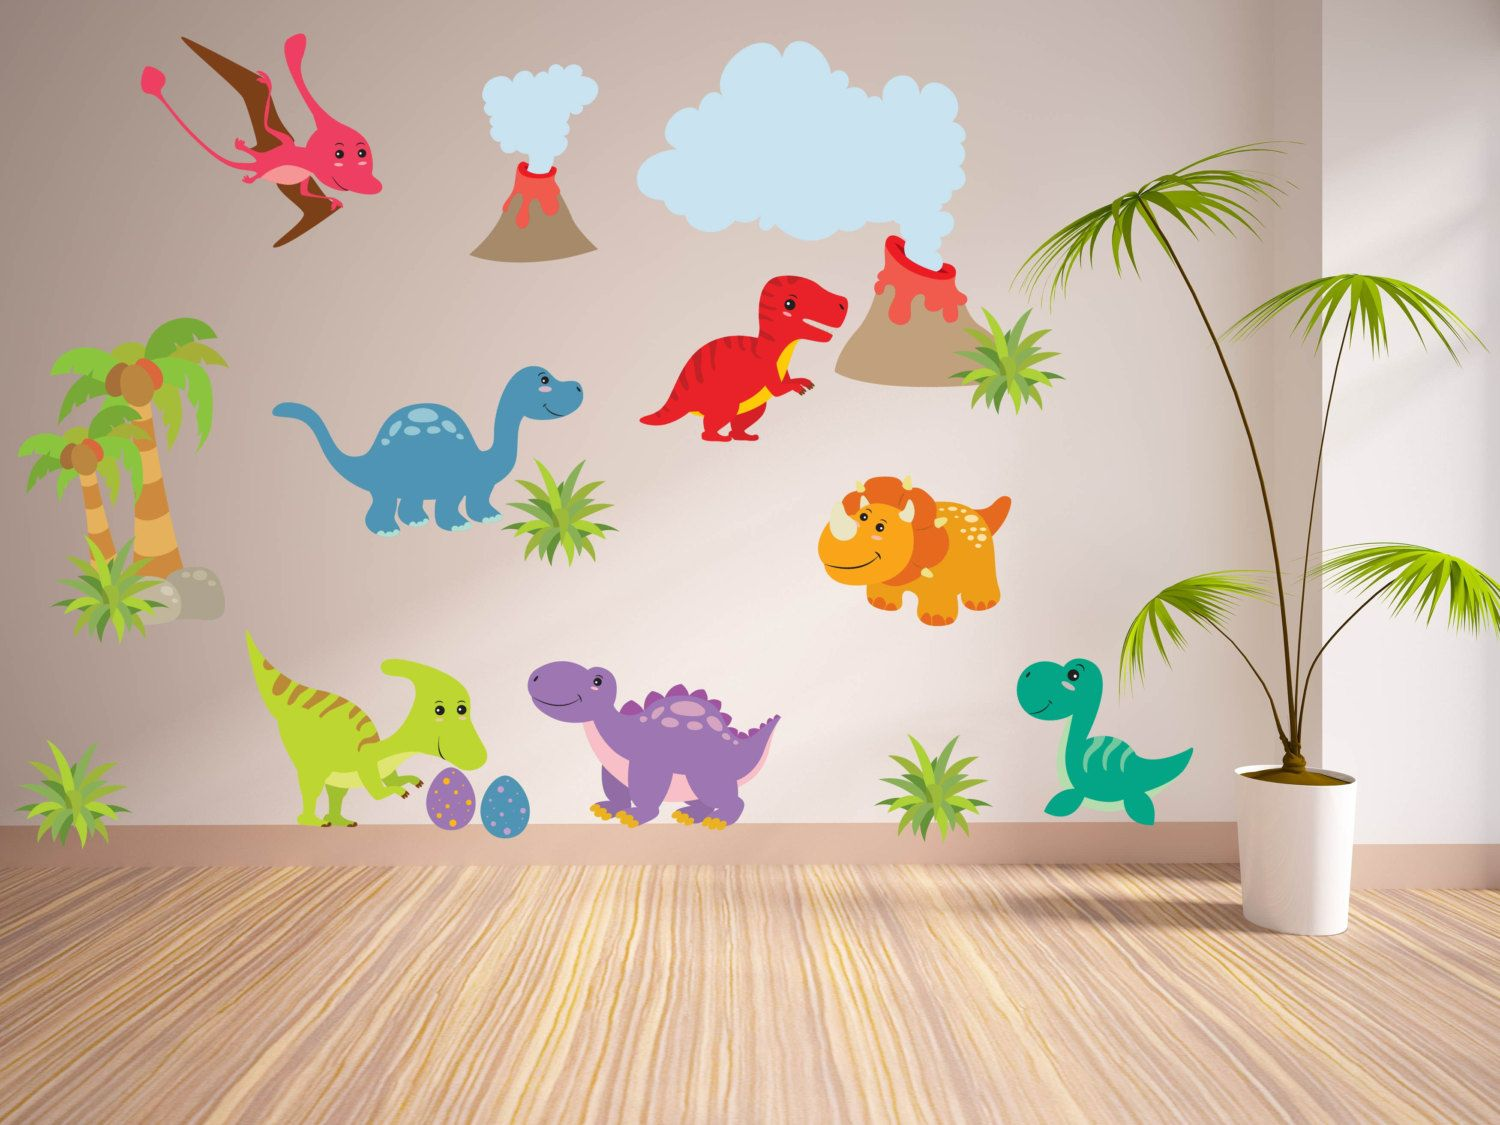 Make your Room Stylish with Wall decor Stickers and Dinosaur Wall Decals